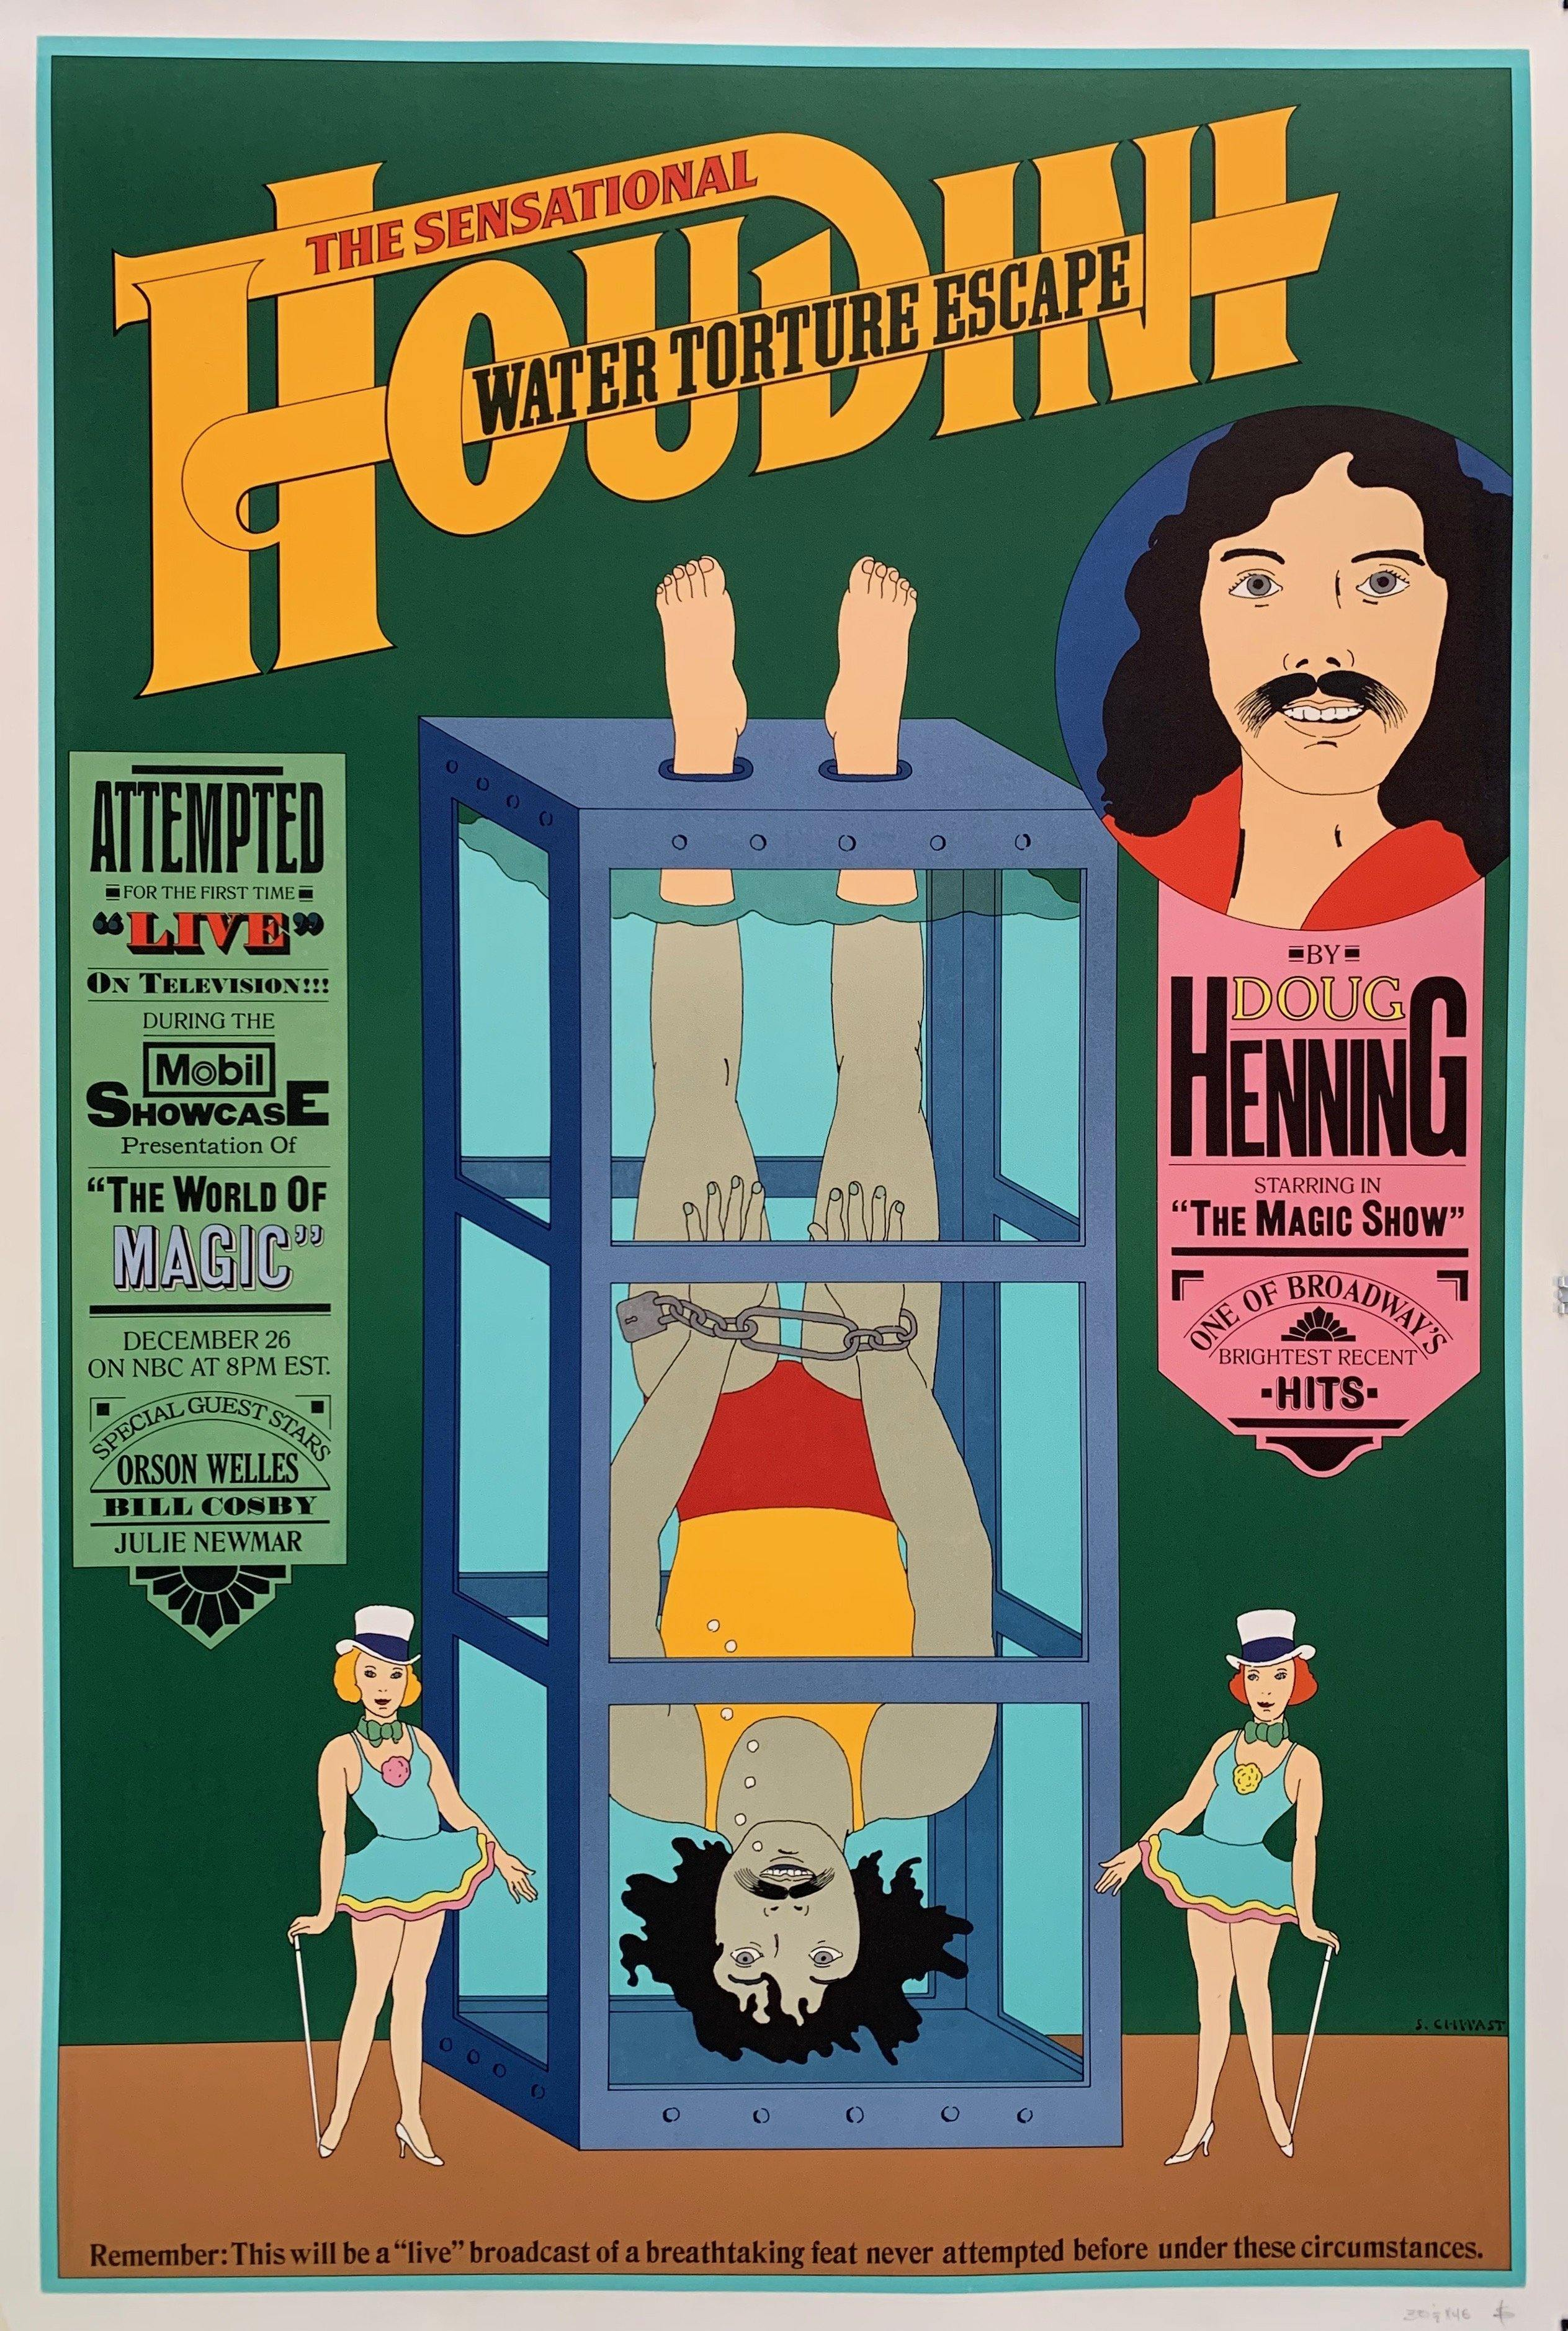 The Sensational Houdini Water Torture Escape